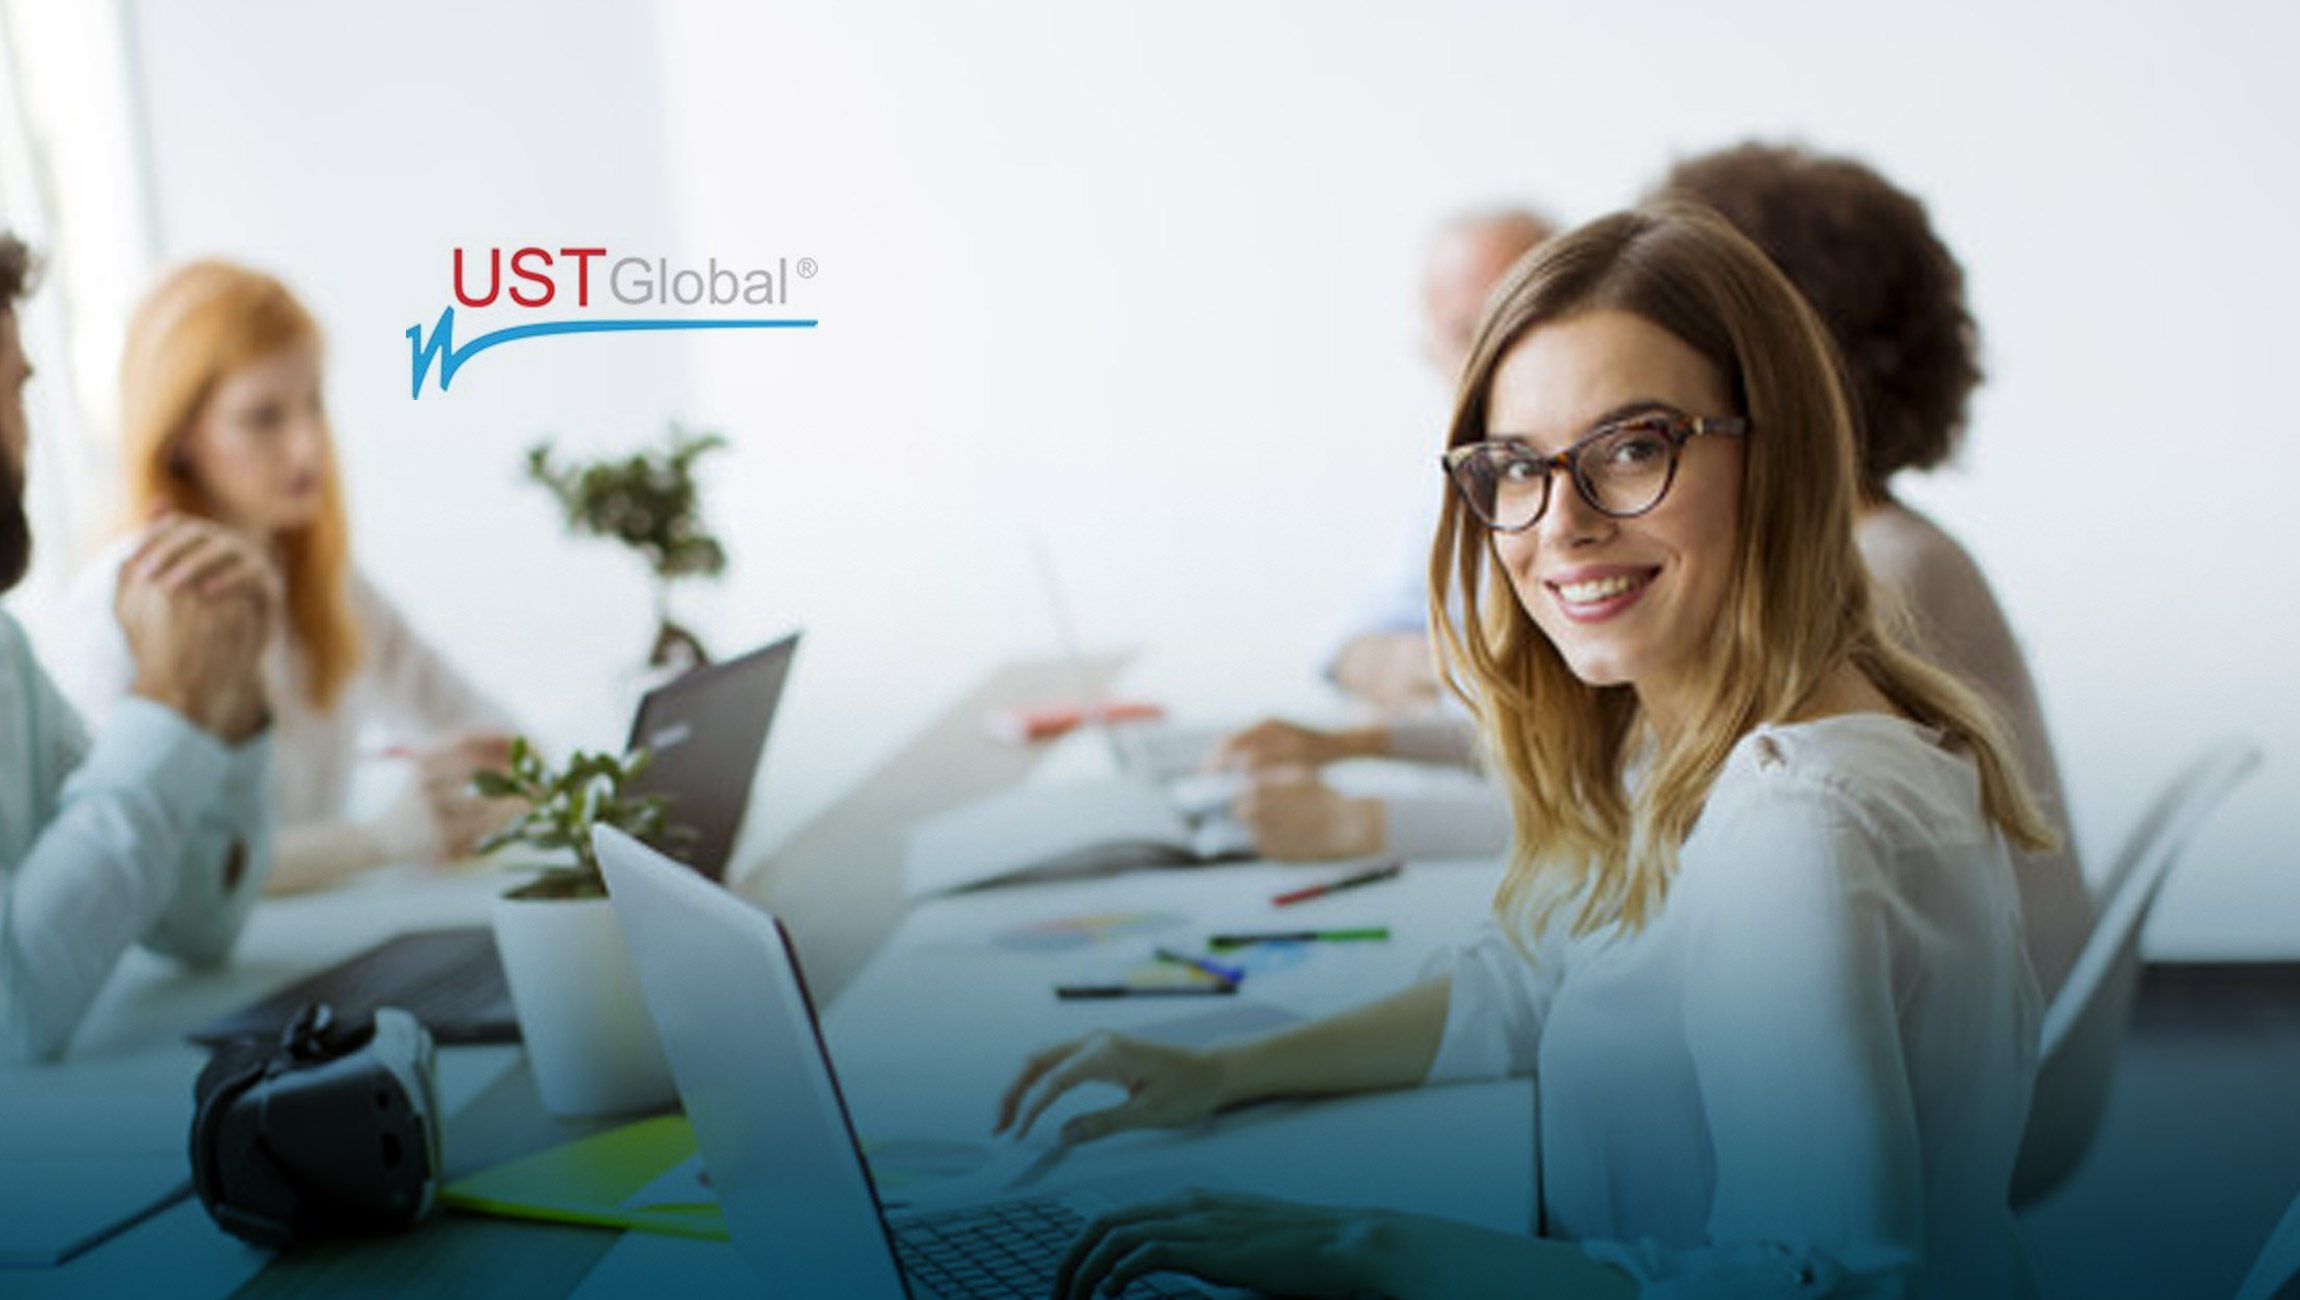 UST Global Announces New Offerings as More IT Operations and Workloads are Shifted to the Cloud